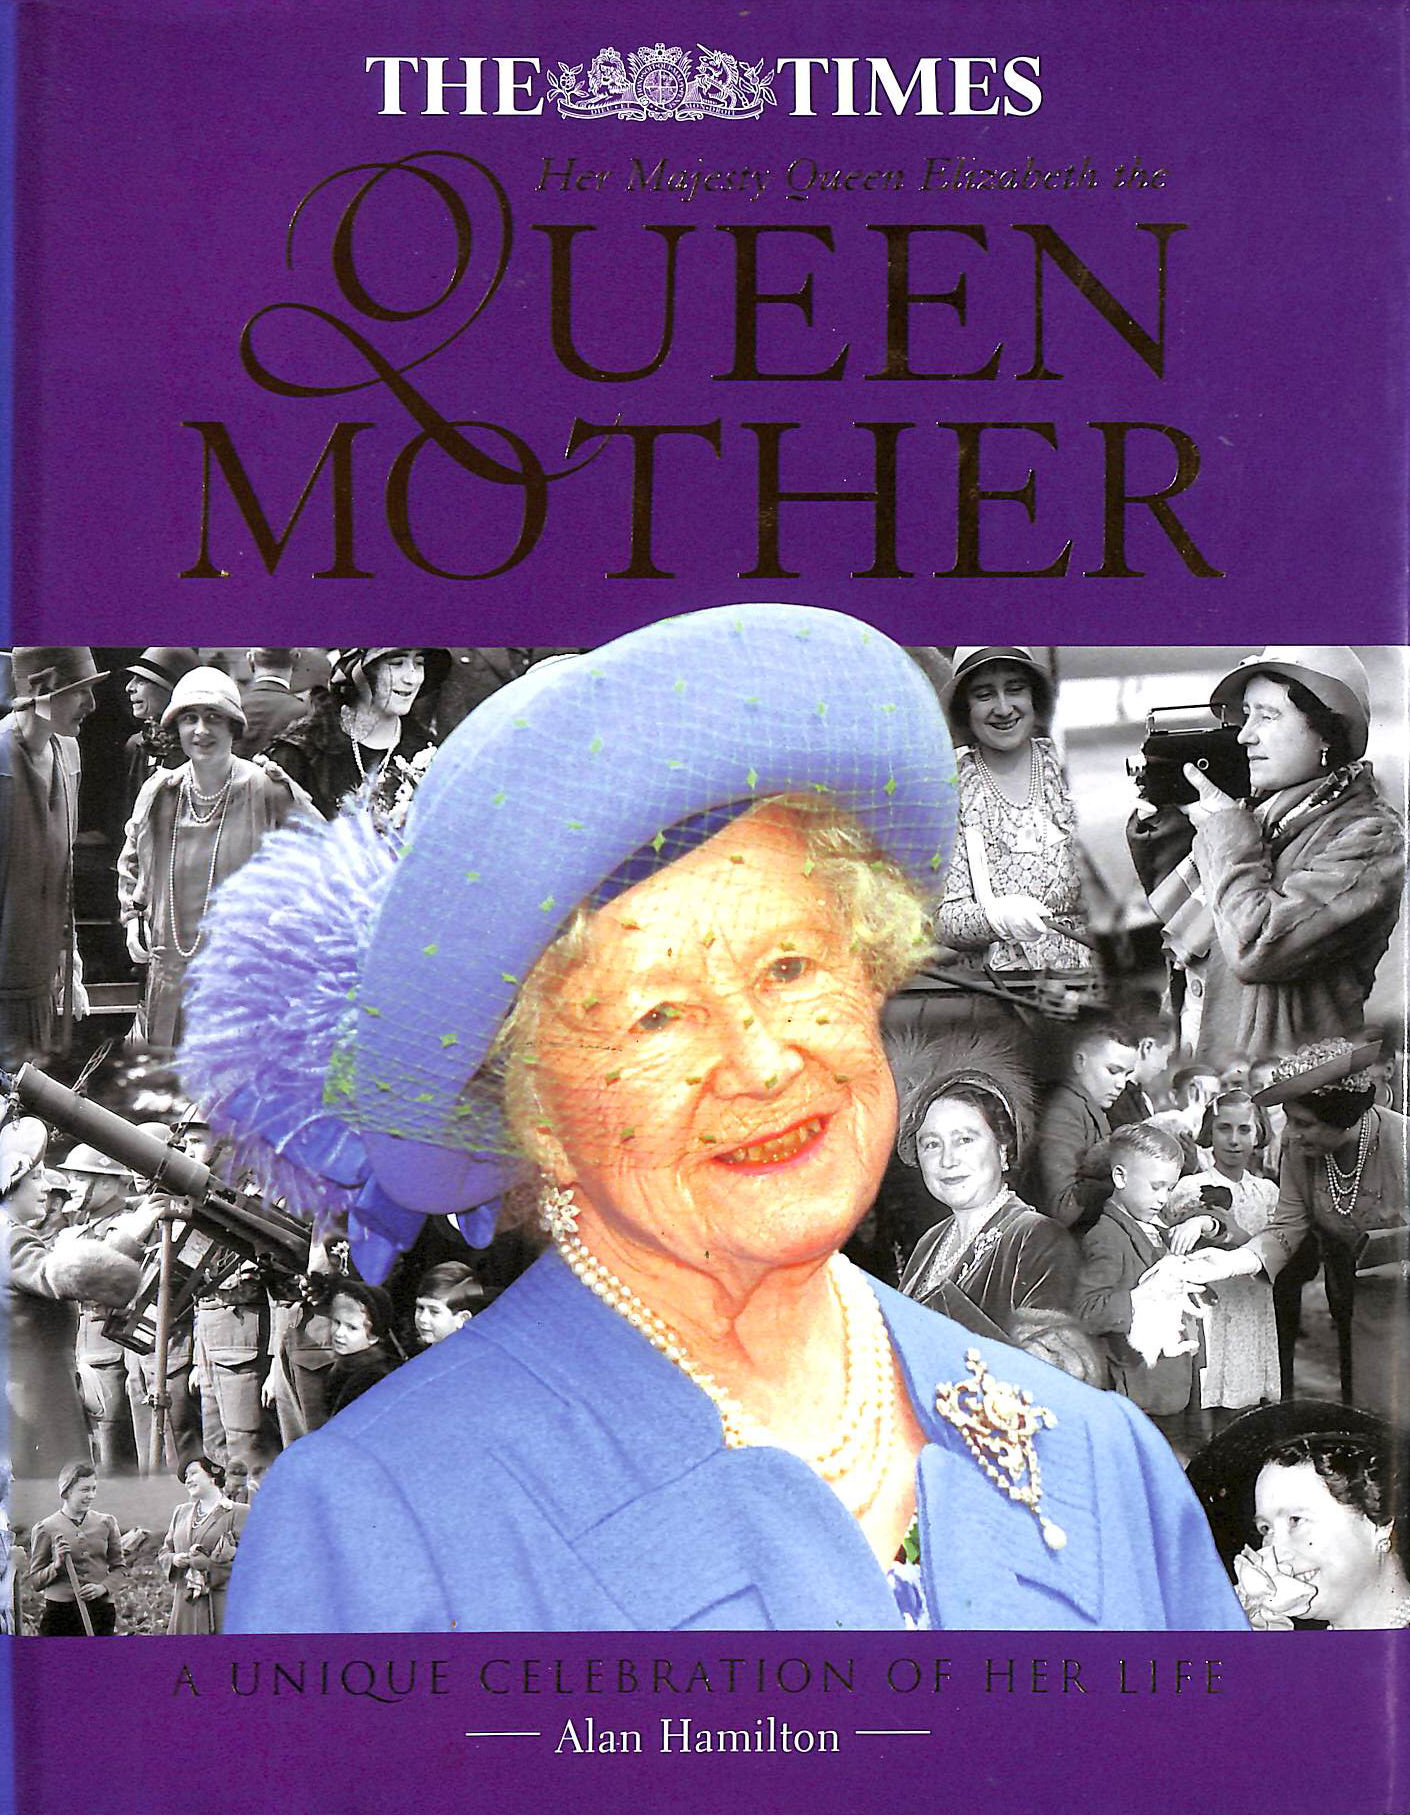 Image for The Times Book of The Queen Mother: A Celebration of the Life and Times of Her Royal Highness Queen Elizabeth the Queen Mother